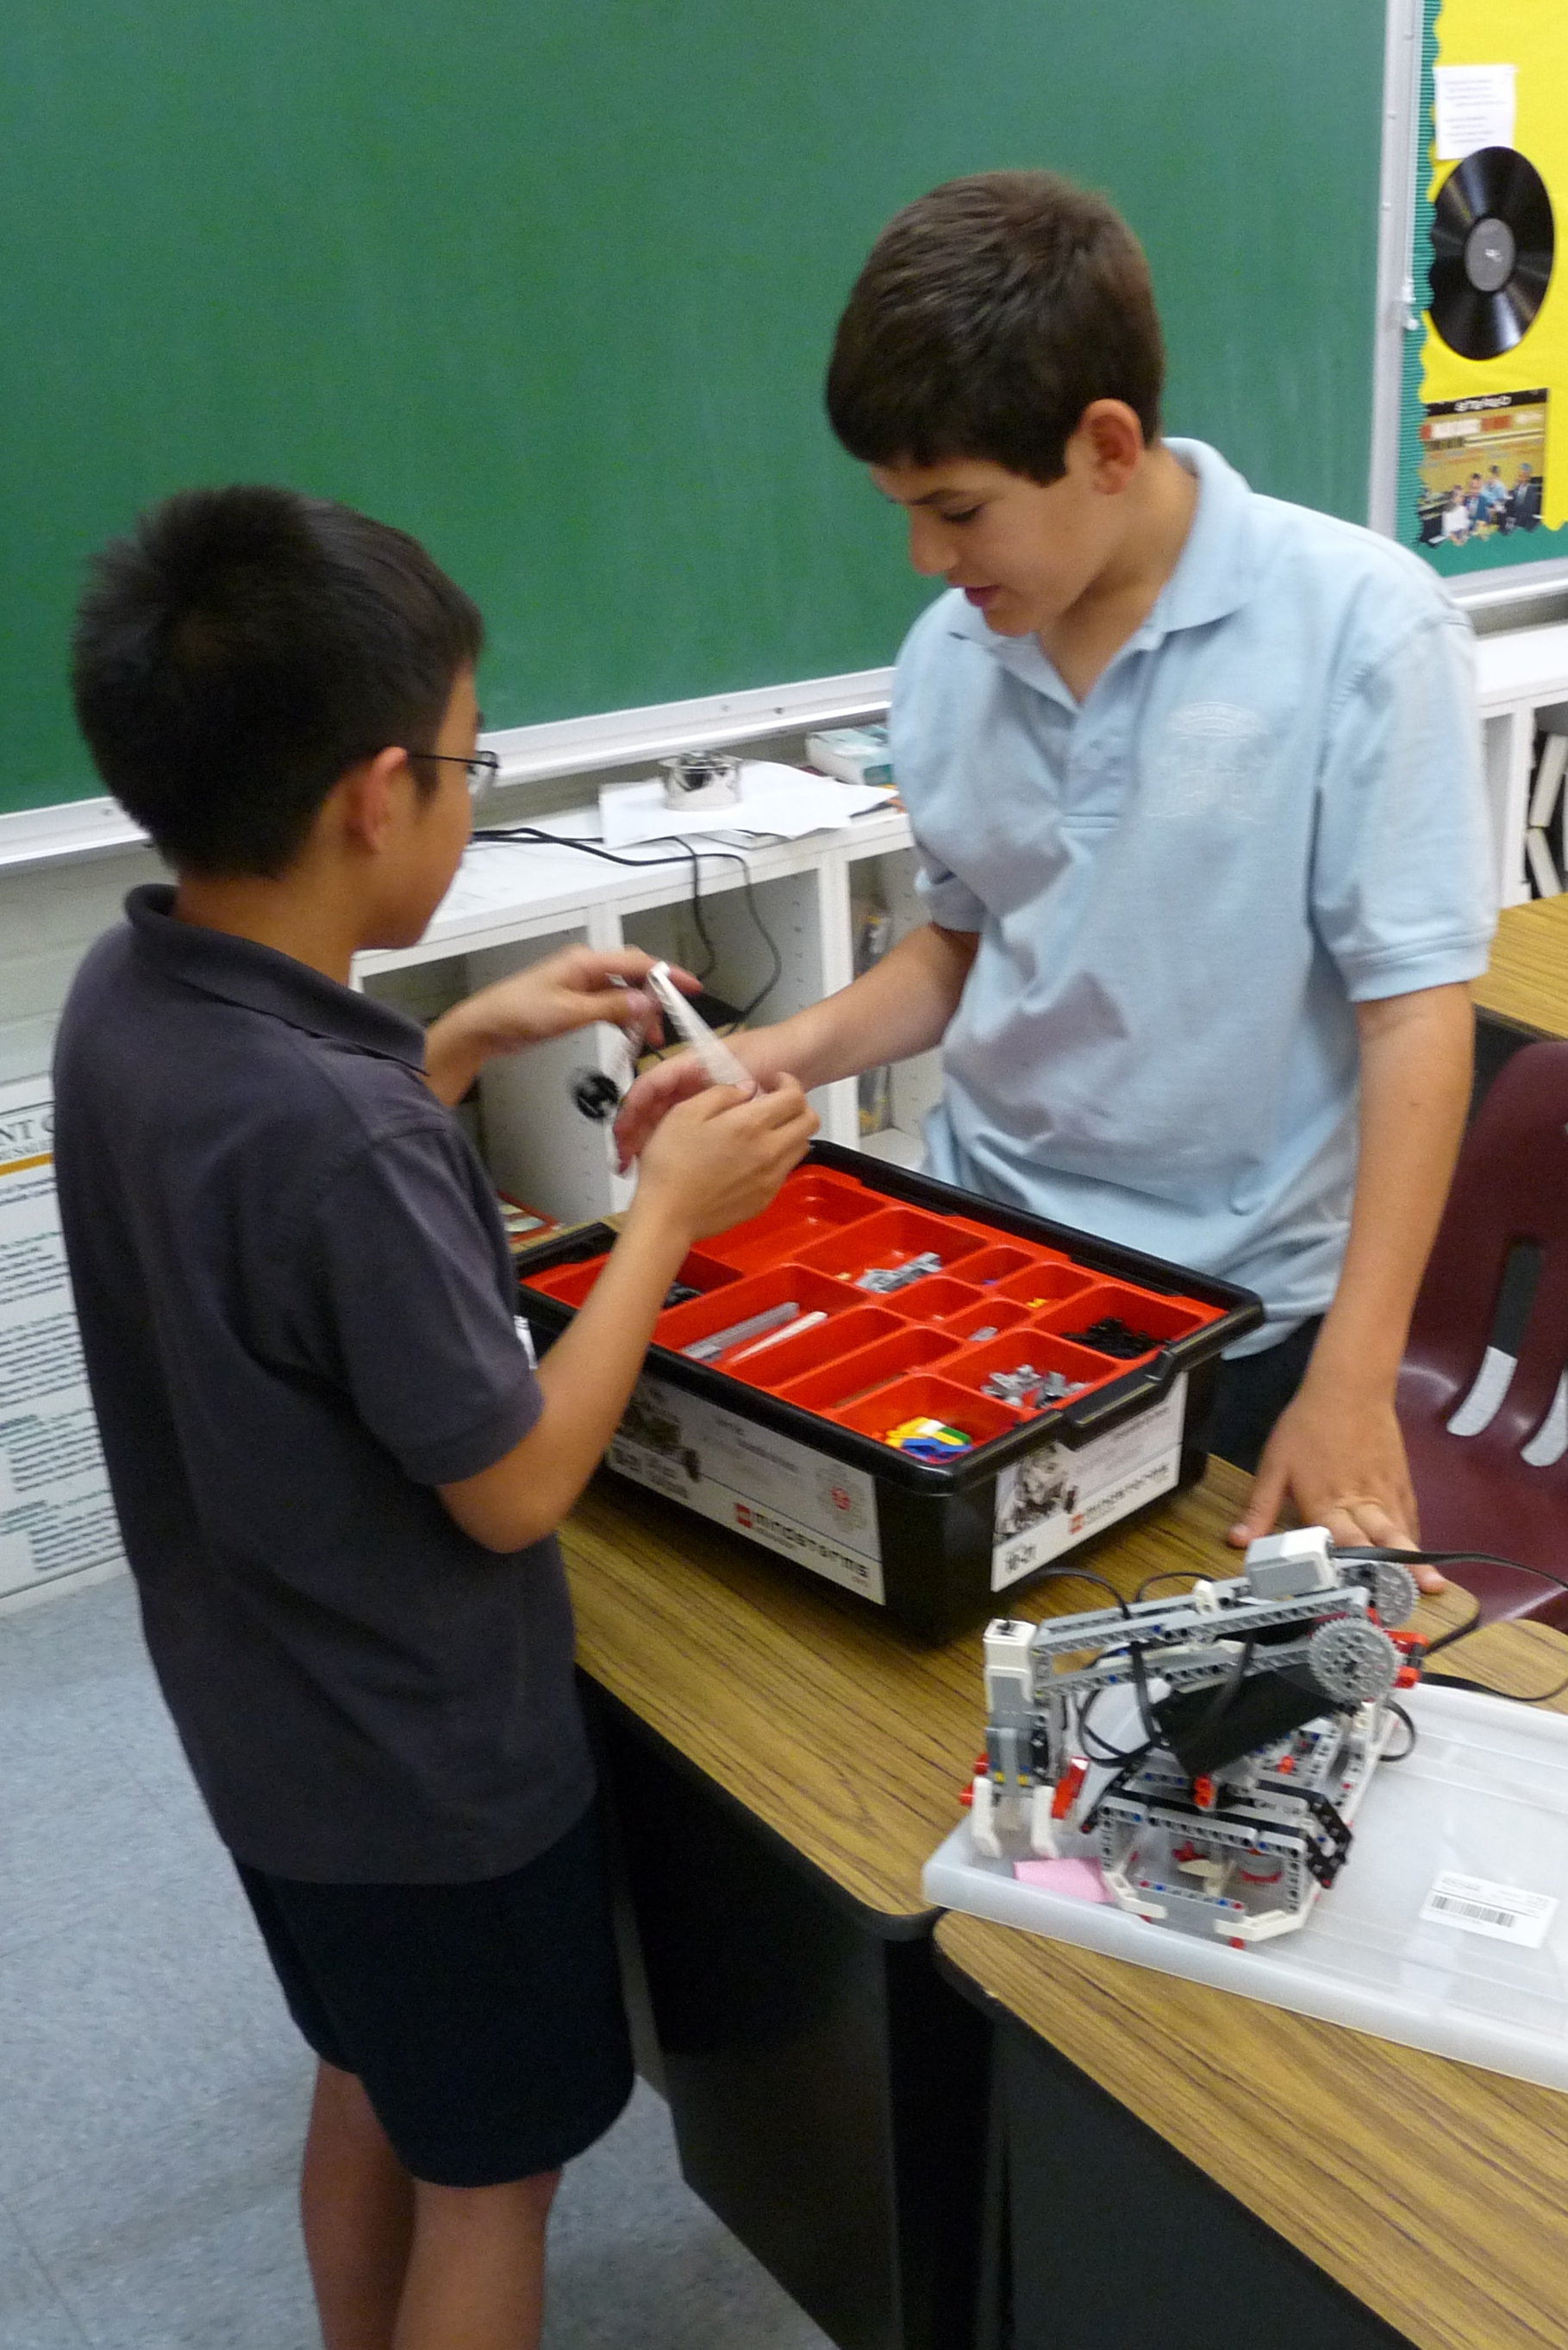 Students sorting through basic components to build a robotic mechanism